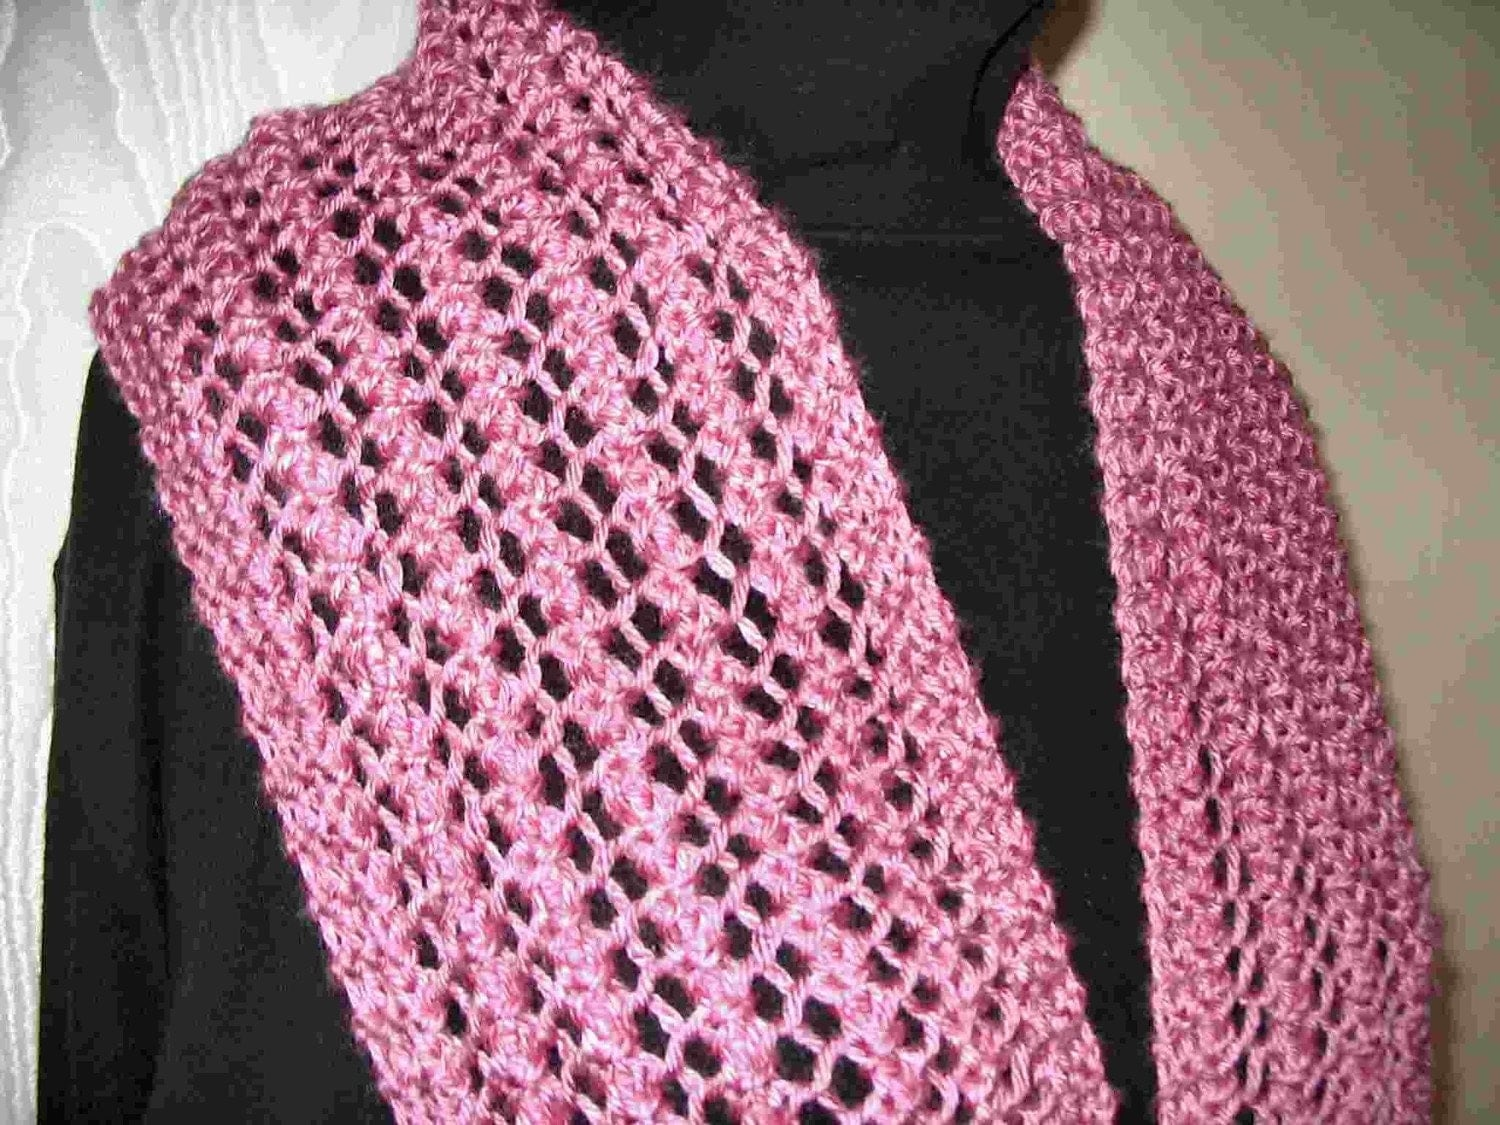 Free Lace Knitting Patterns : EASY LACE KNIT PATTERNS   Free Patterns